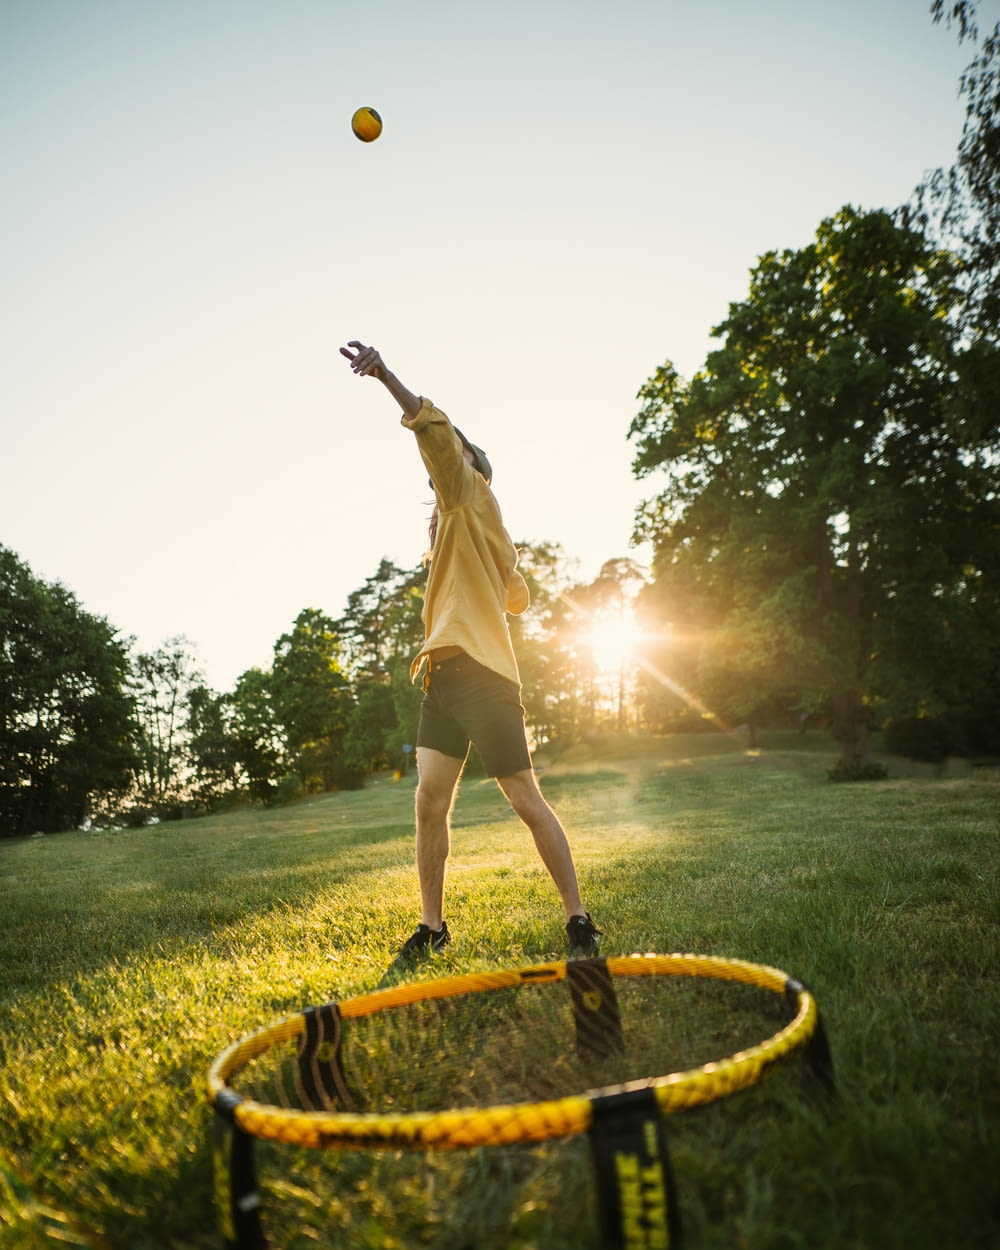 woman in white dress jumping on yellow round trampoline during daytime